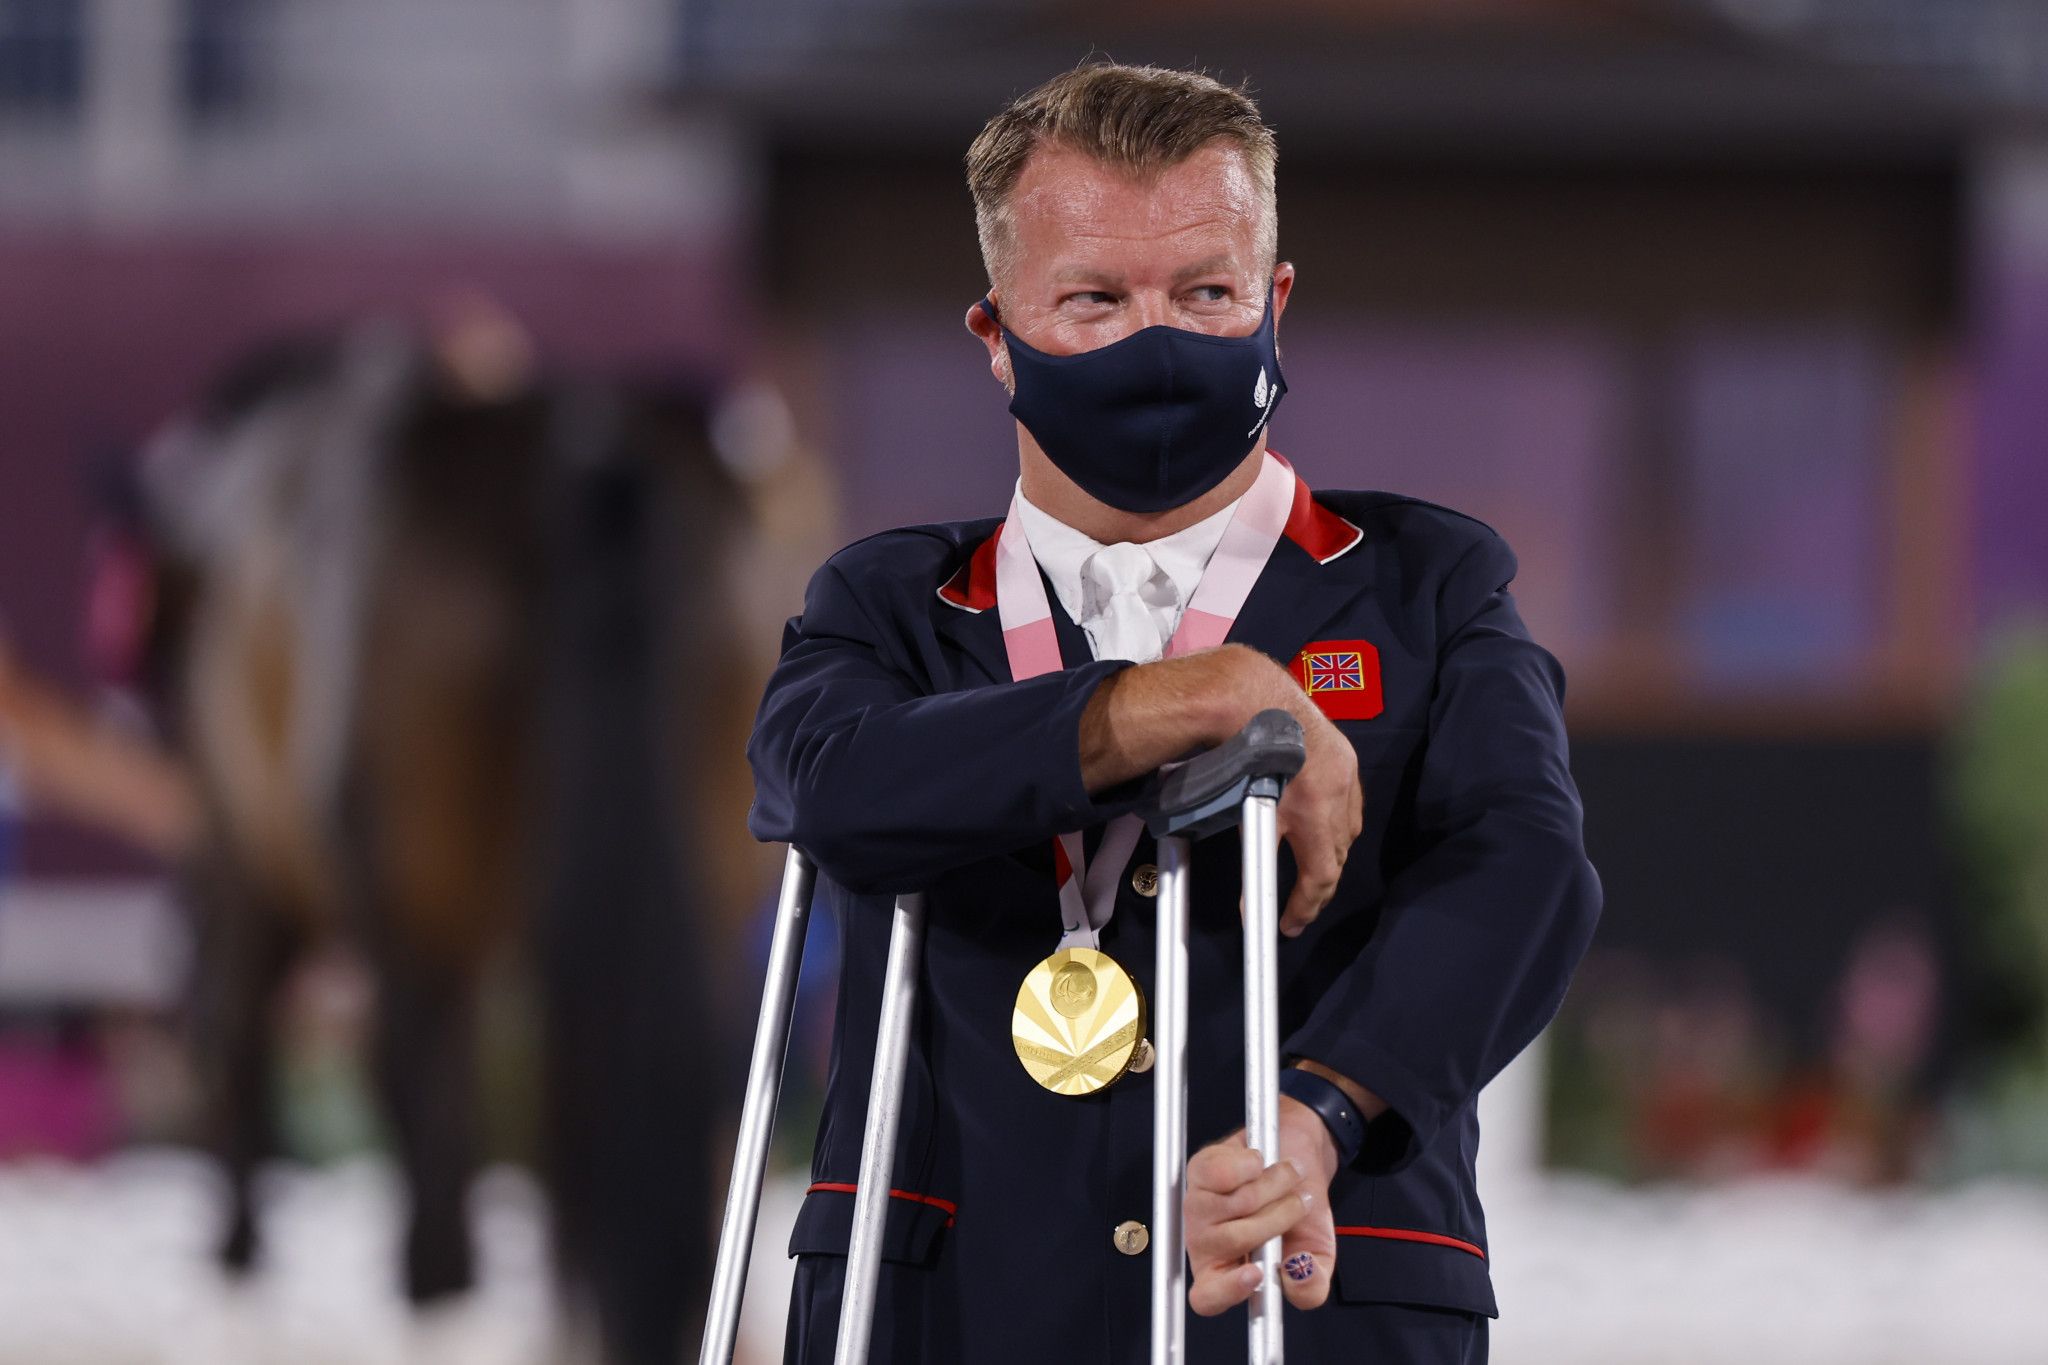 Pearson wins 14th Paralympic gold as dressage competition concludes at Tokyo 2020 Paralympics